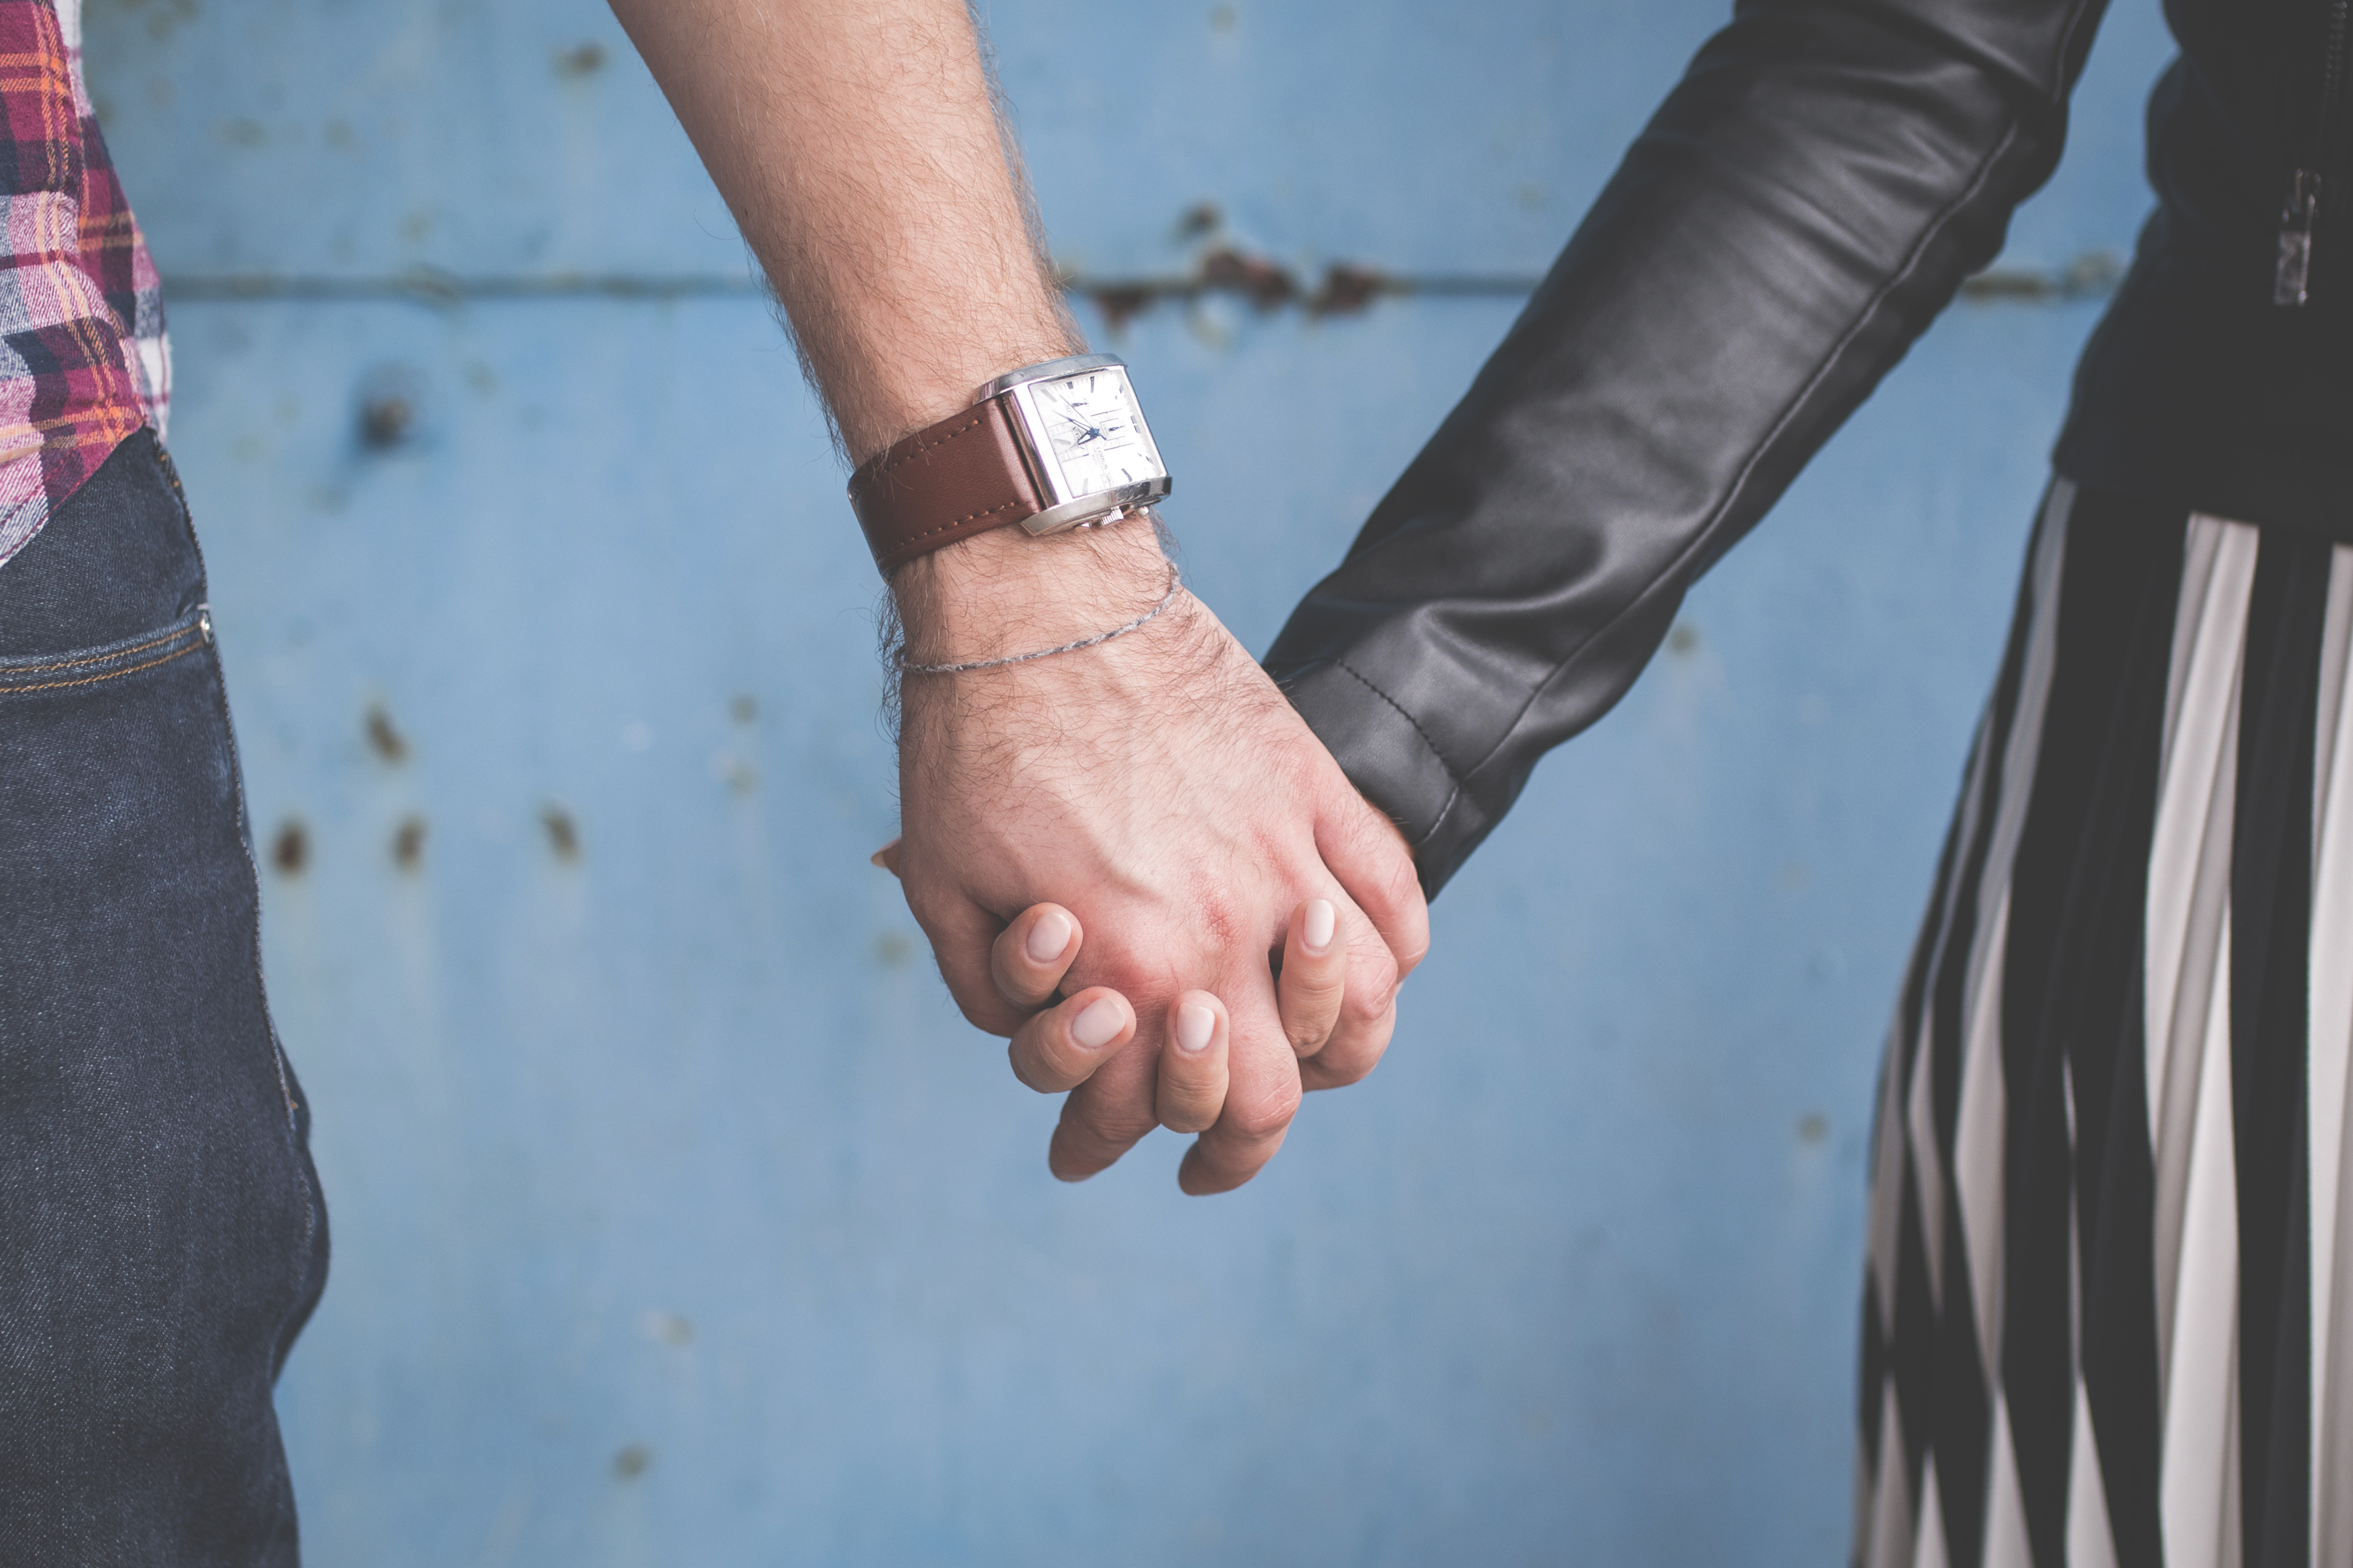 2 Person Holding Hands Besides Blue Painted Wall